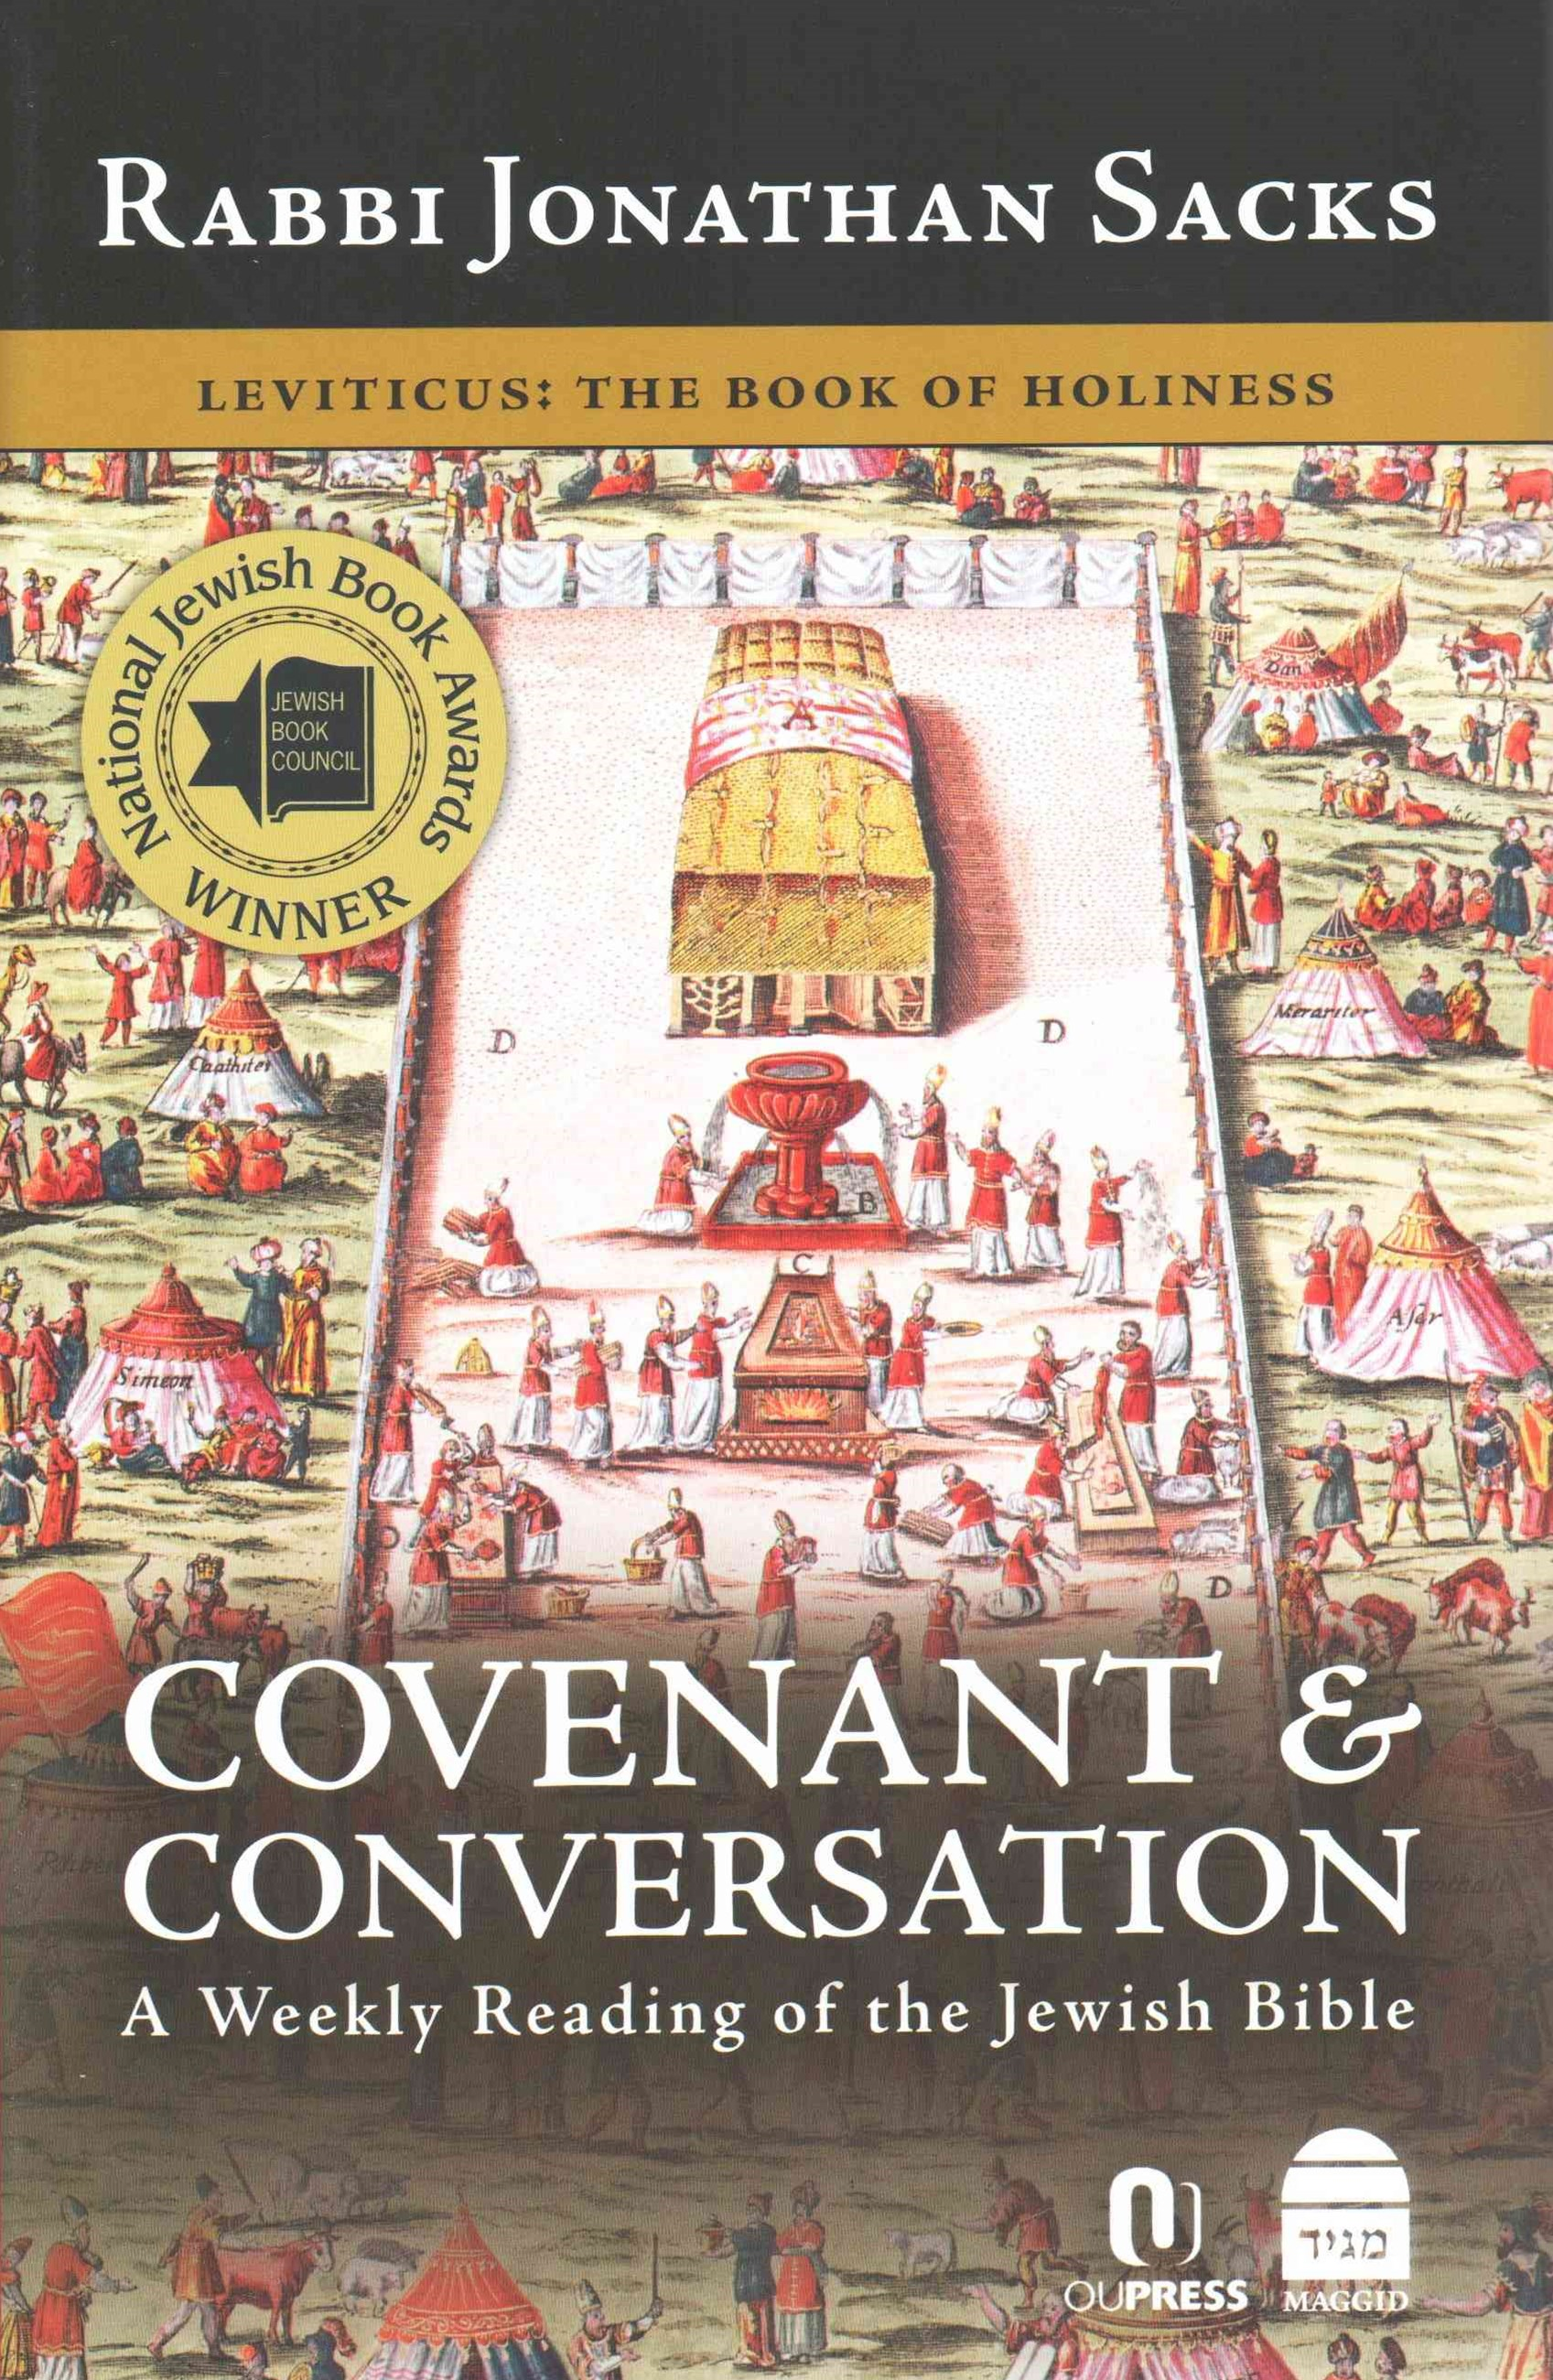 Covenent and Conversation Vol. III